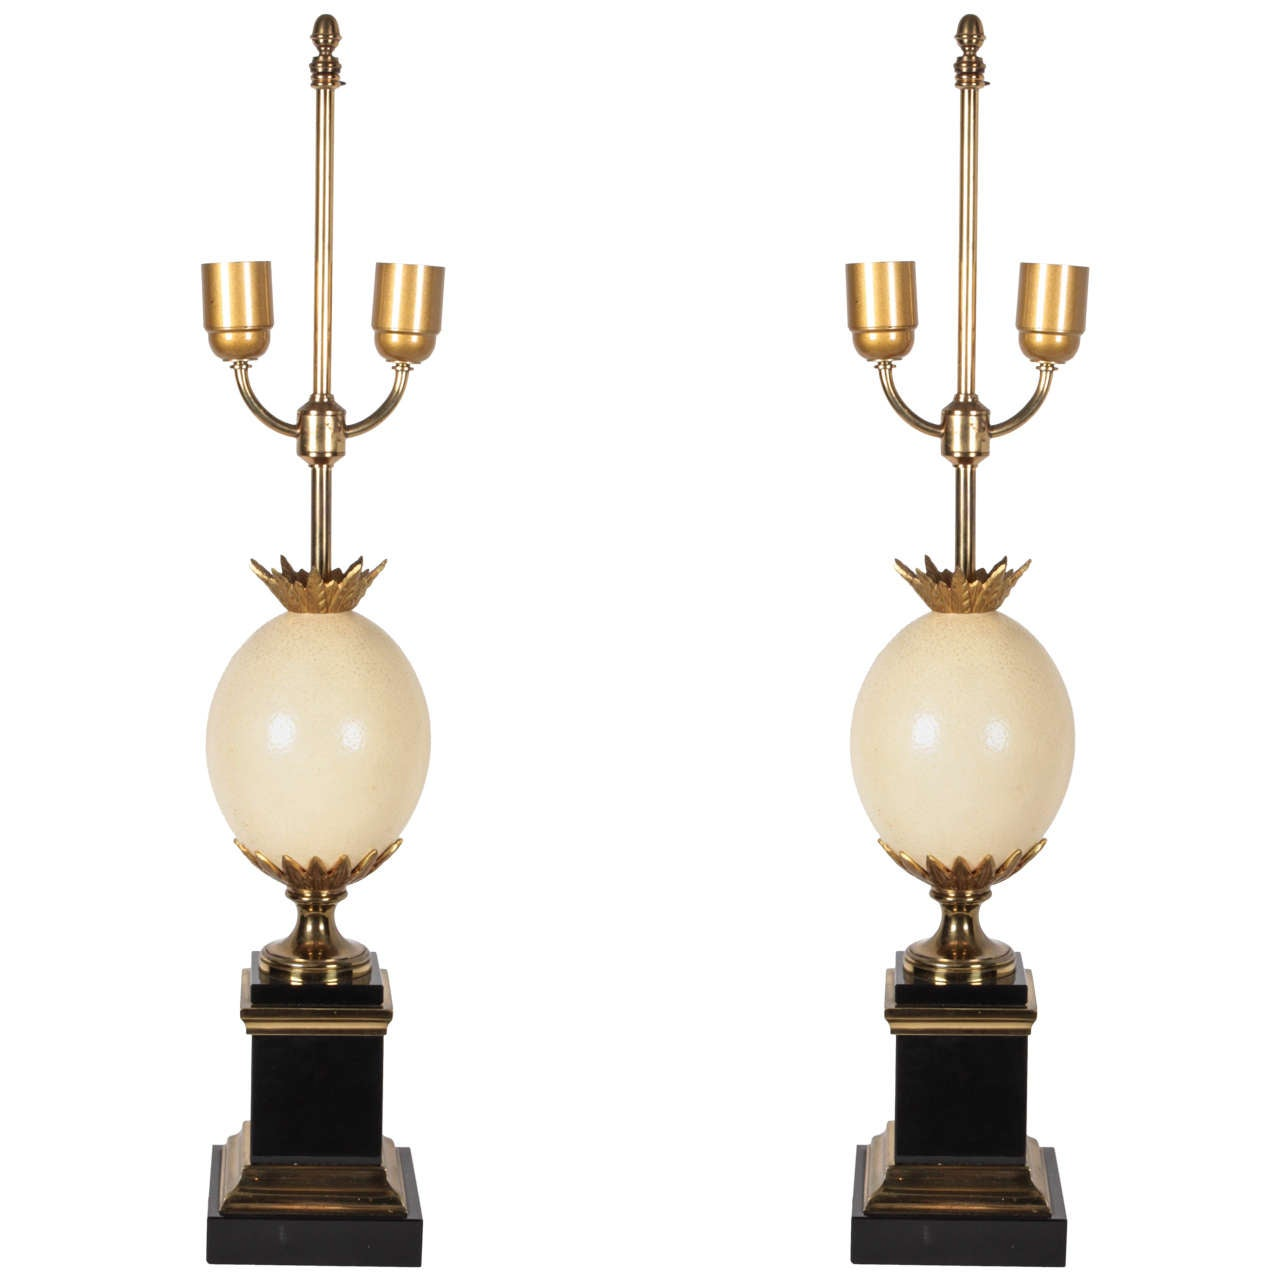 Pair of Table Lamps by Maison Charles